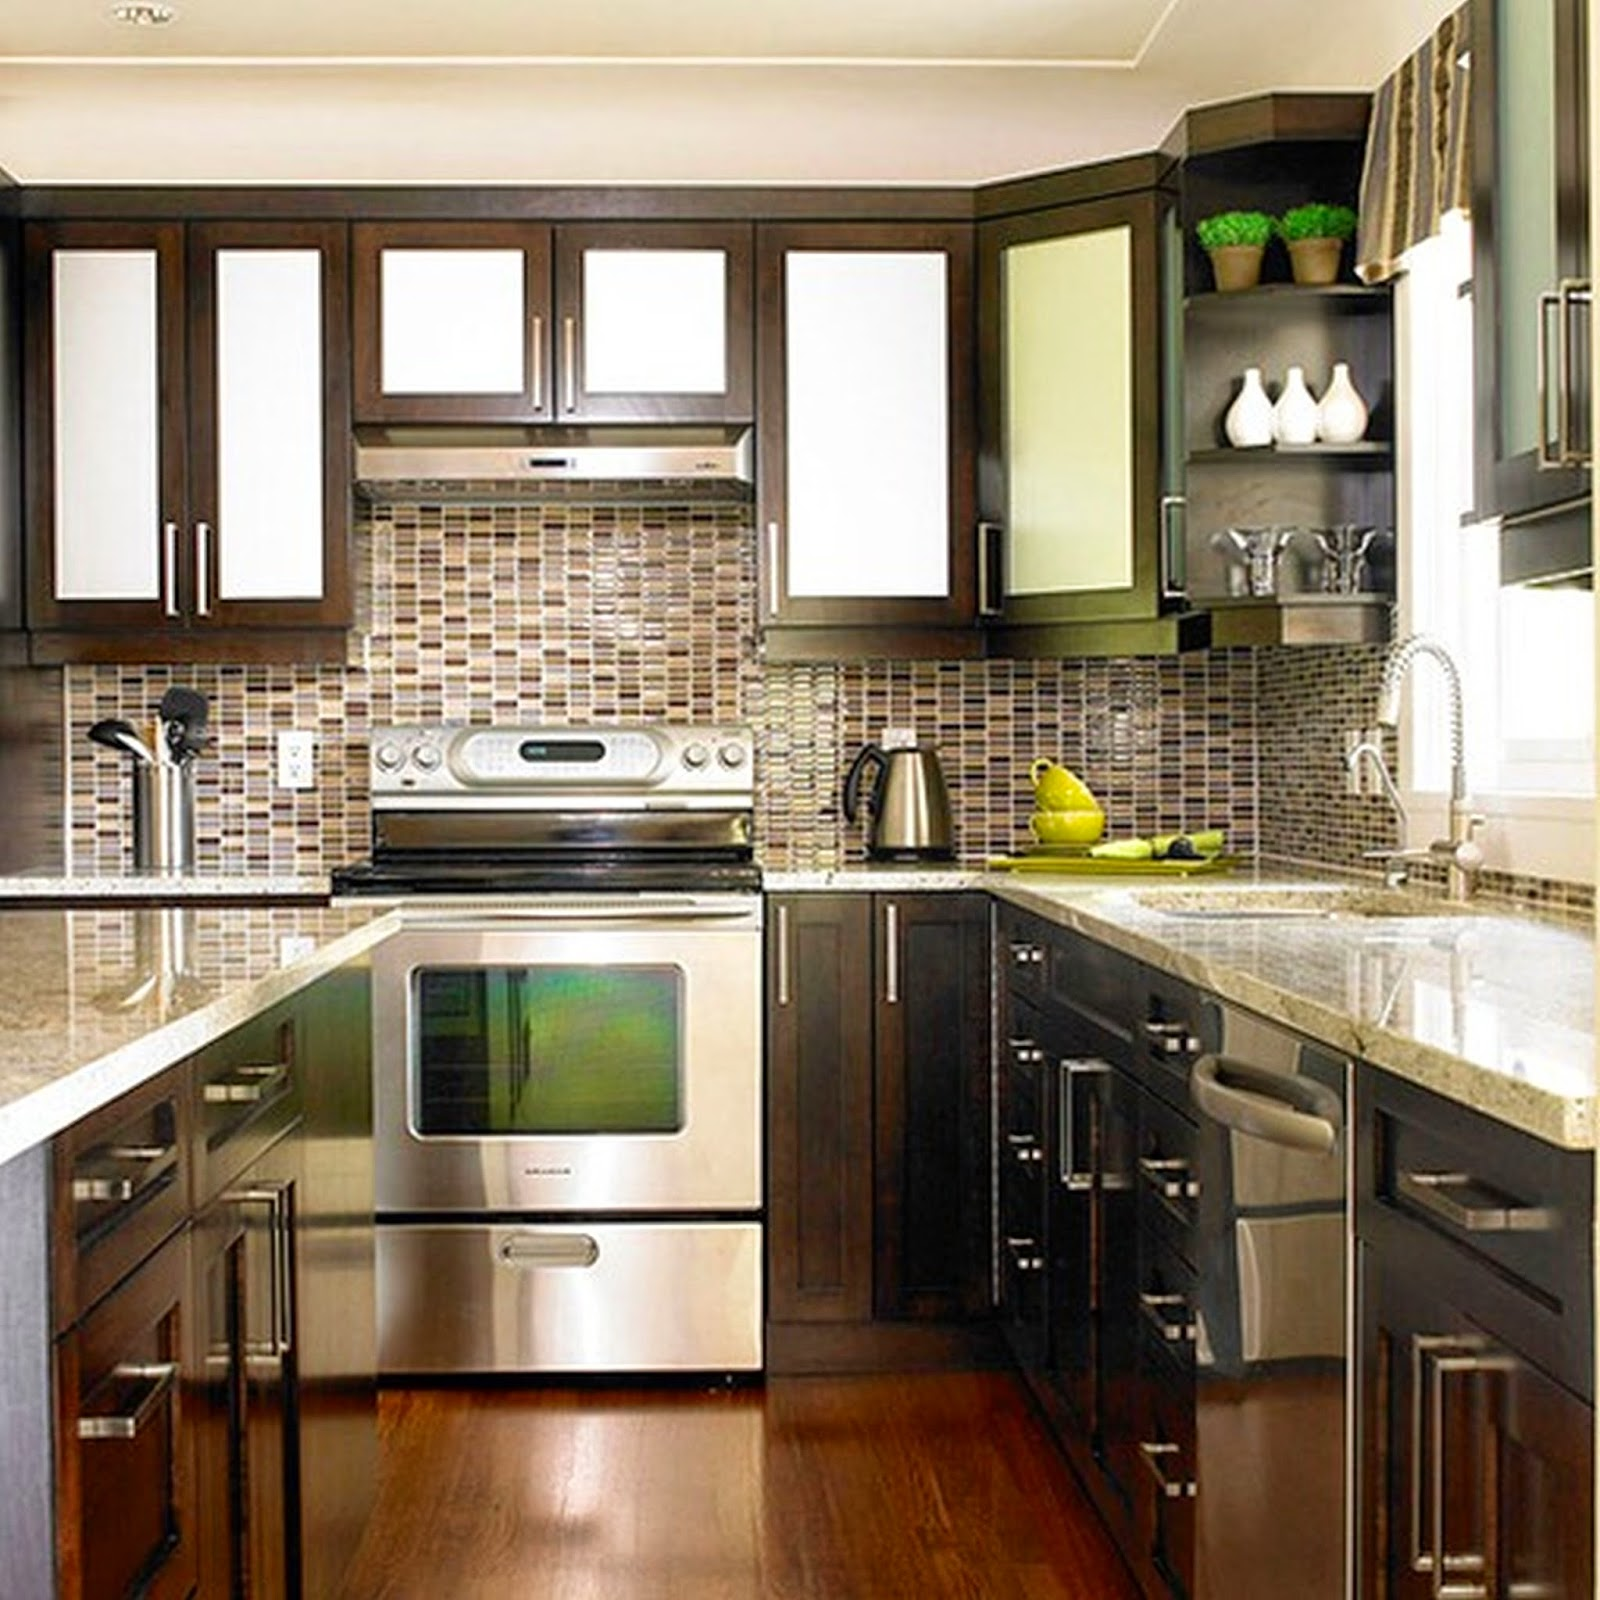 Furniture Kitchen Cabinets: Costco Kitchen Cabinets: The Recommended Supplier